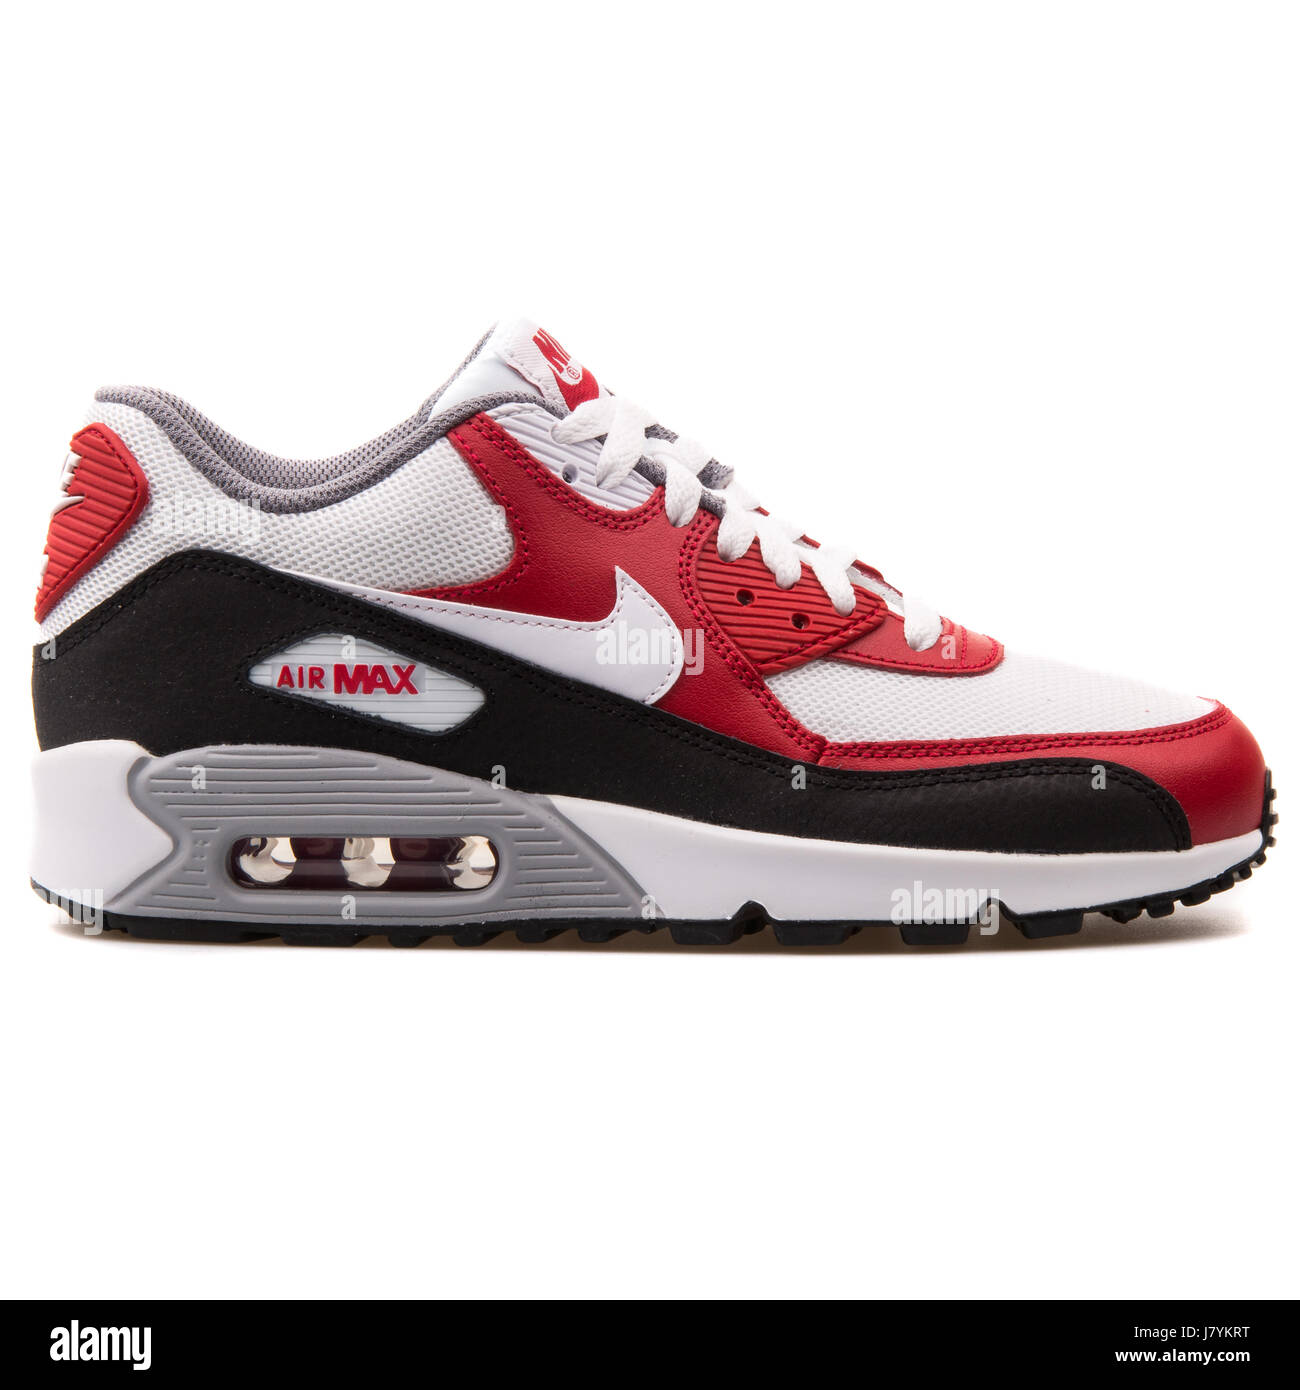 5d68b7f0 Nike Air Max 90 Mesh (GS) Red White and Black Youth Sports Sneakers -